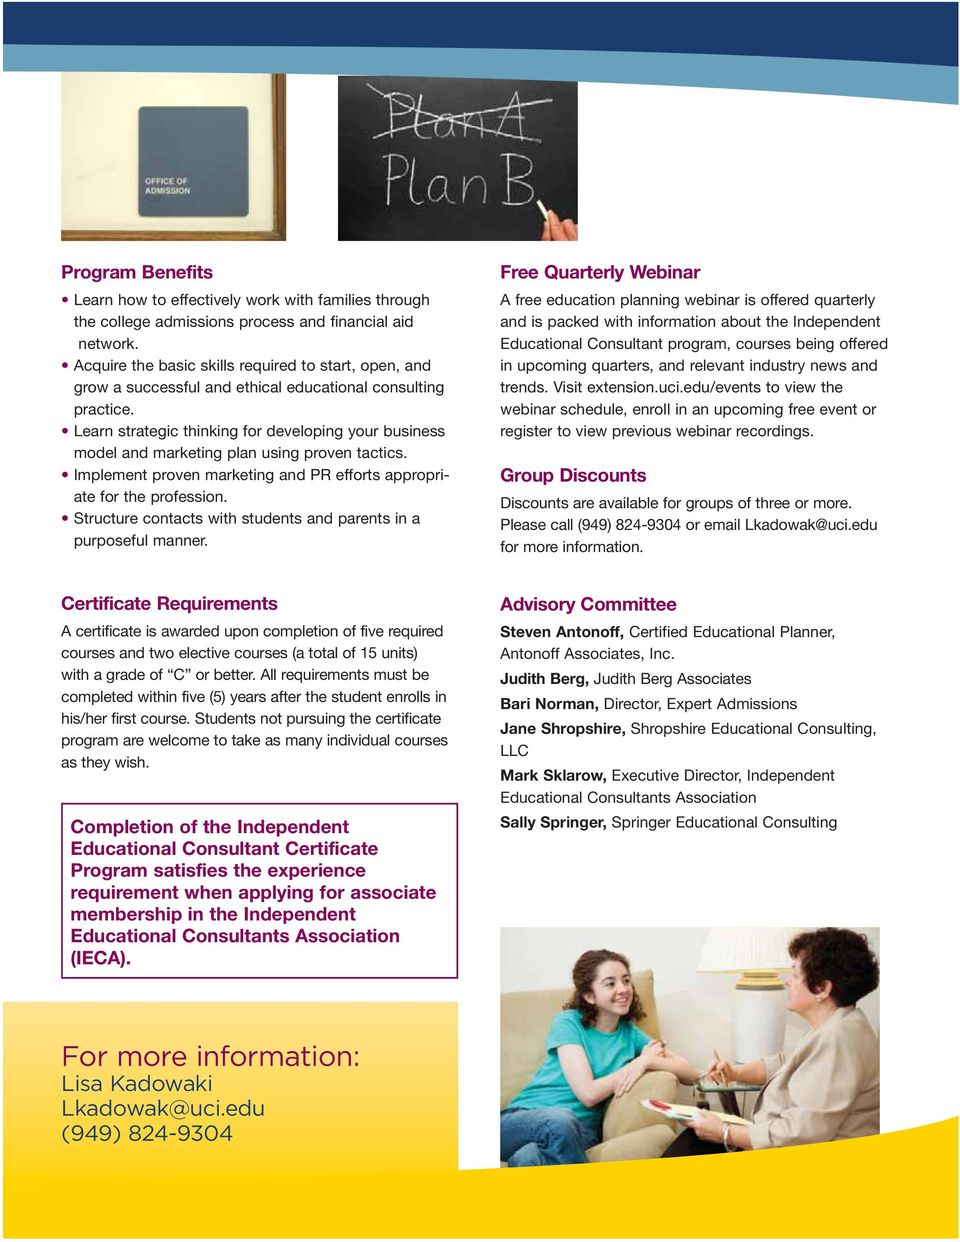 Independent Educational Consultant Certificate Program - PDF